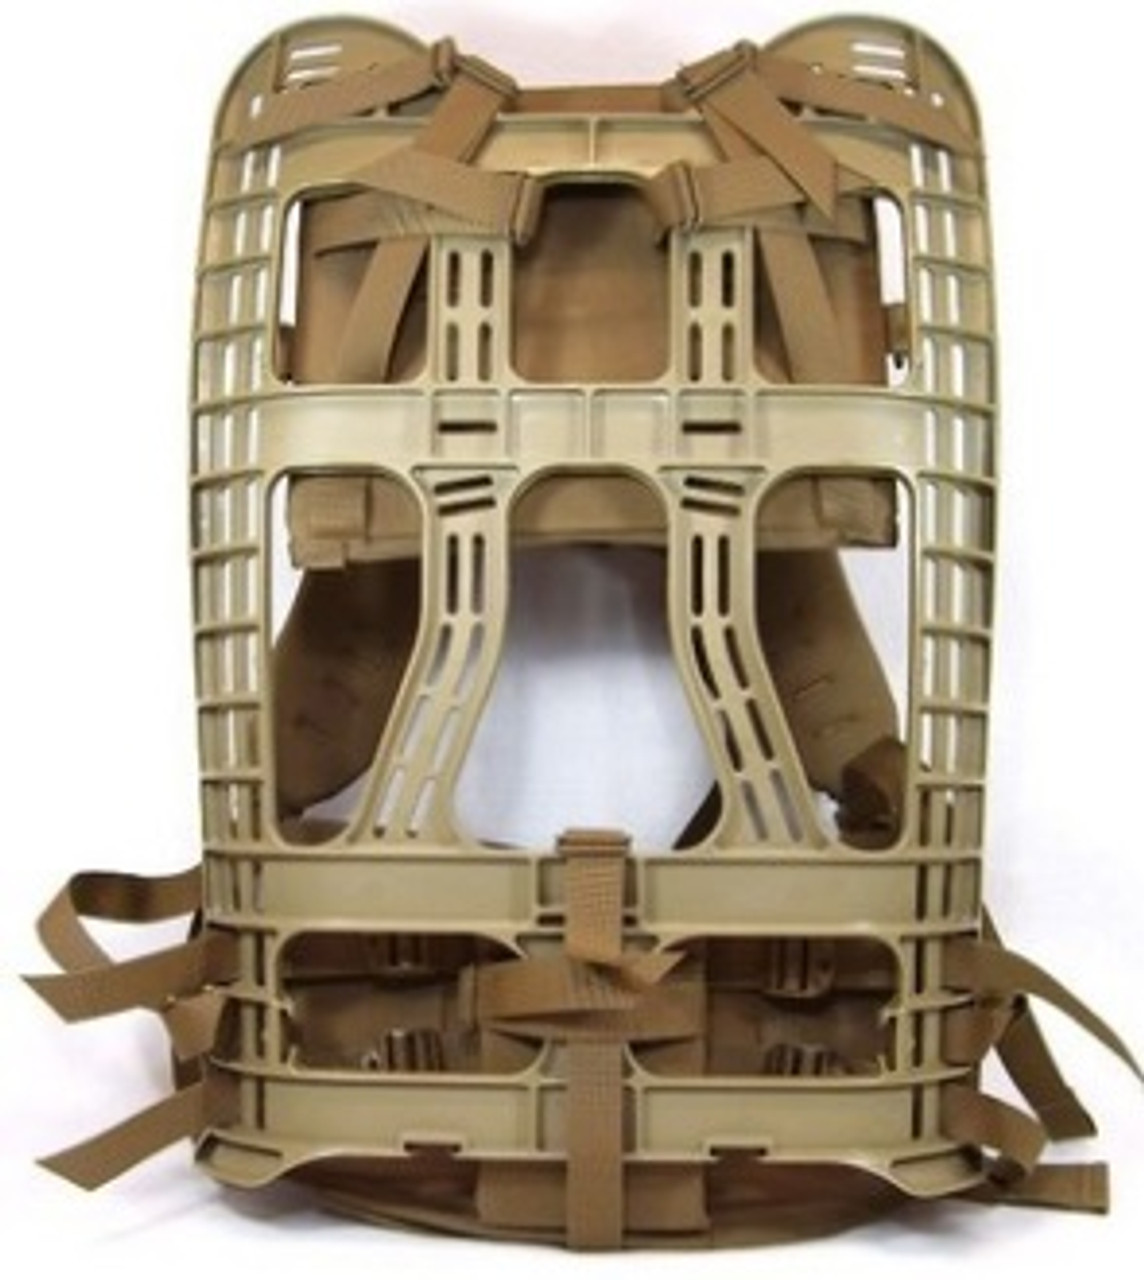 With the Purchase Any Molle Ruck Sack, receive 1 free Molle Frame per Ruck Sack!  $24.95 Value Each!